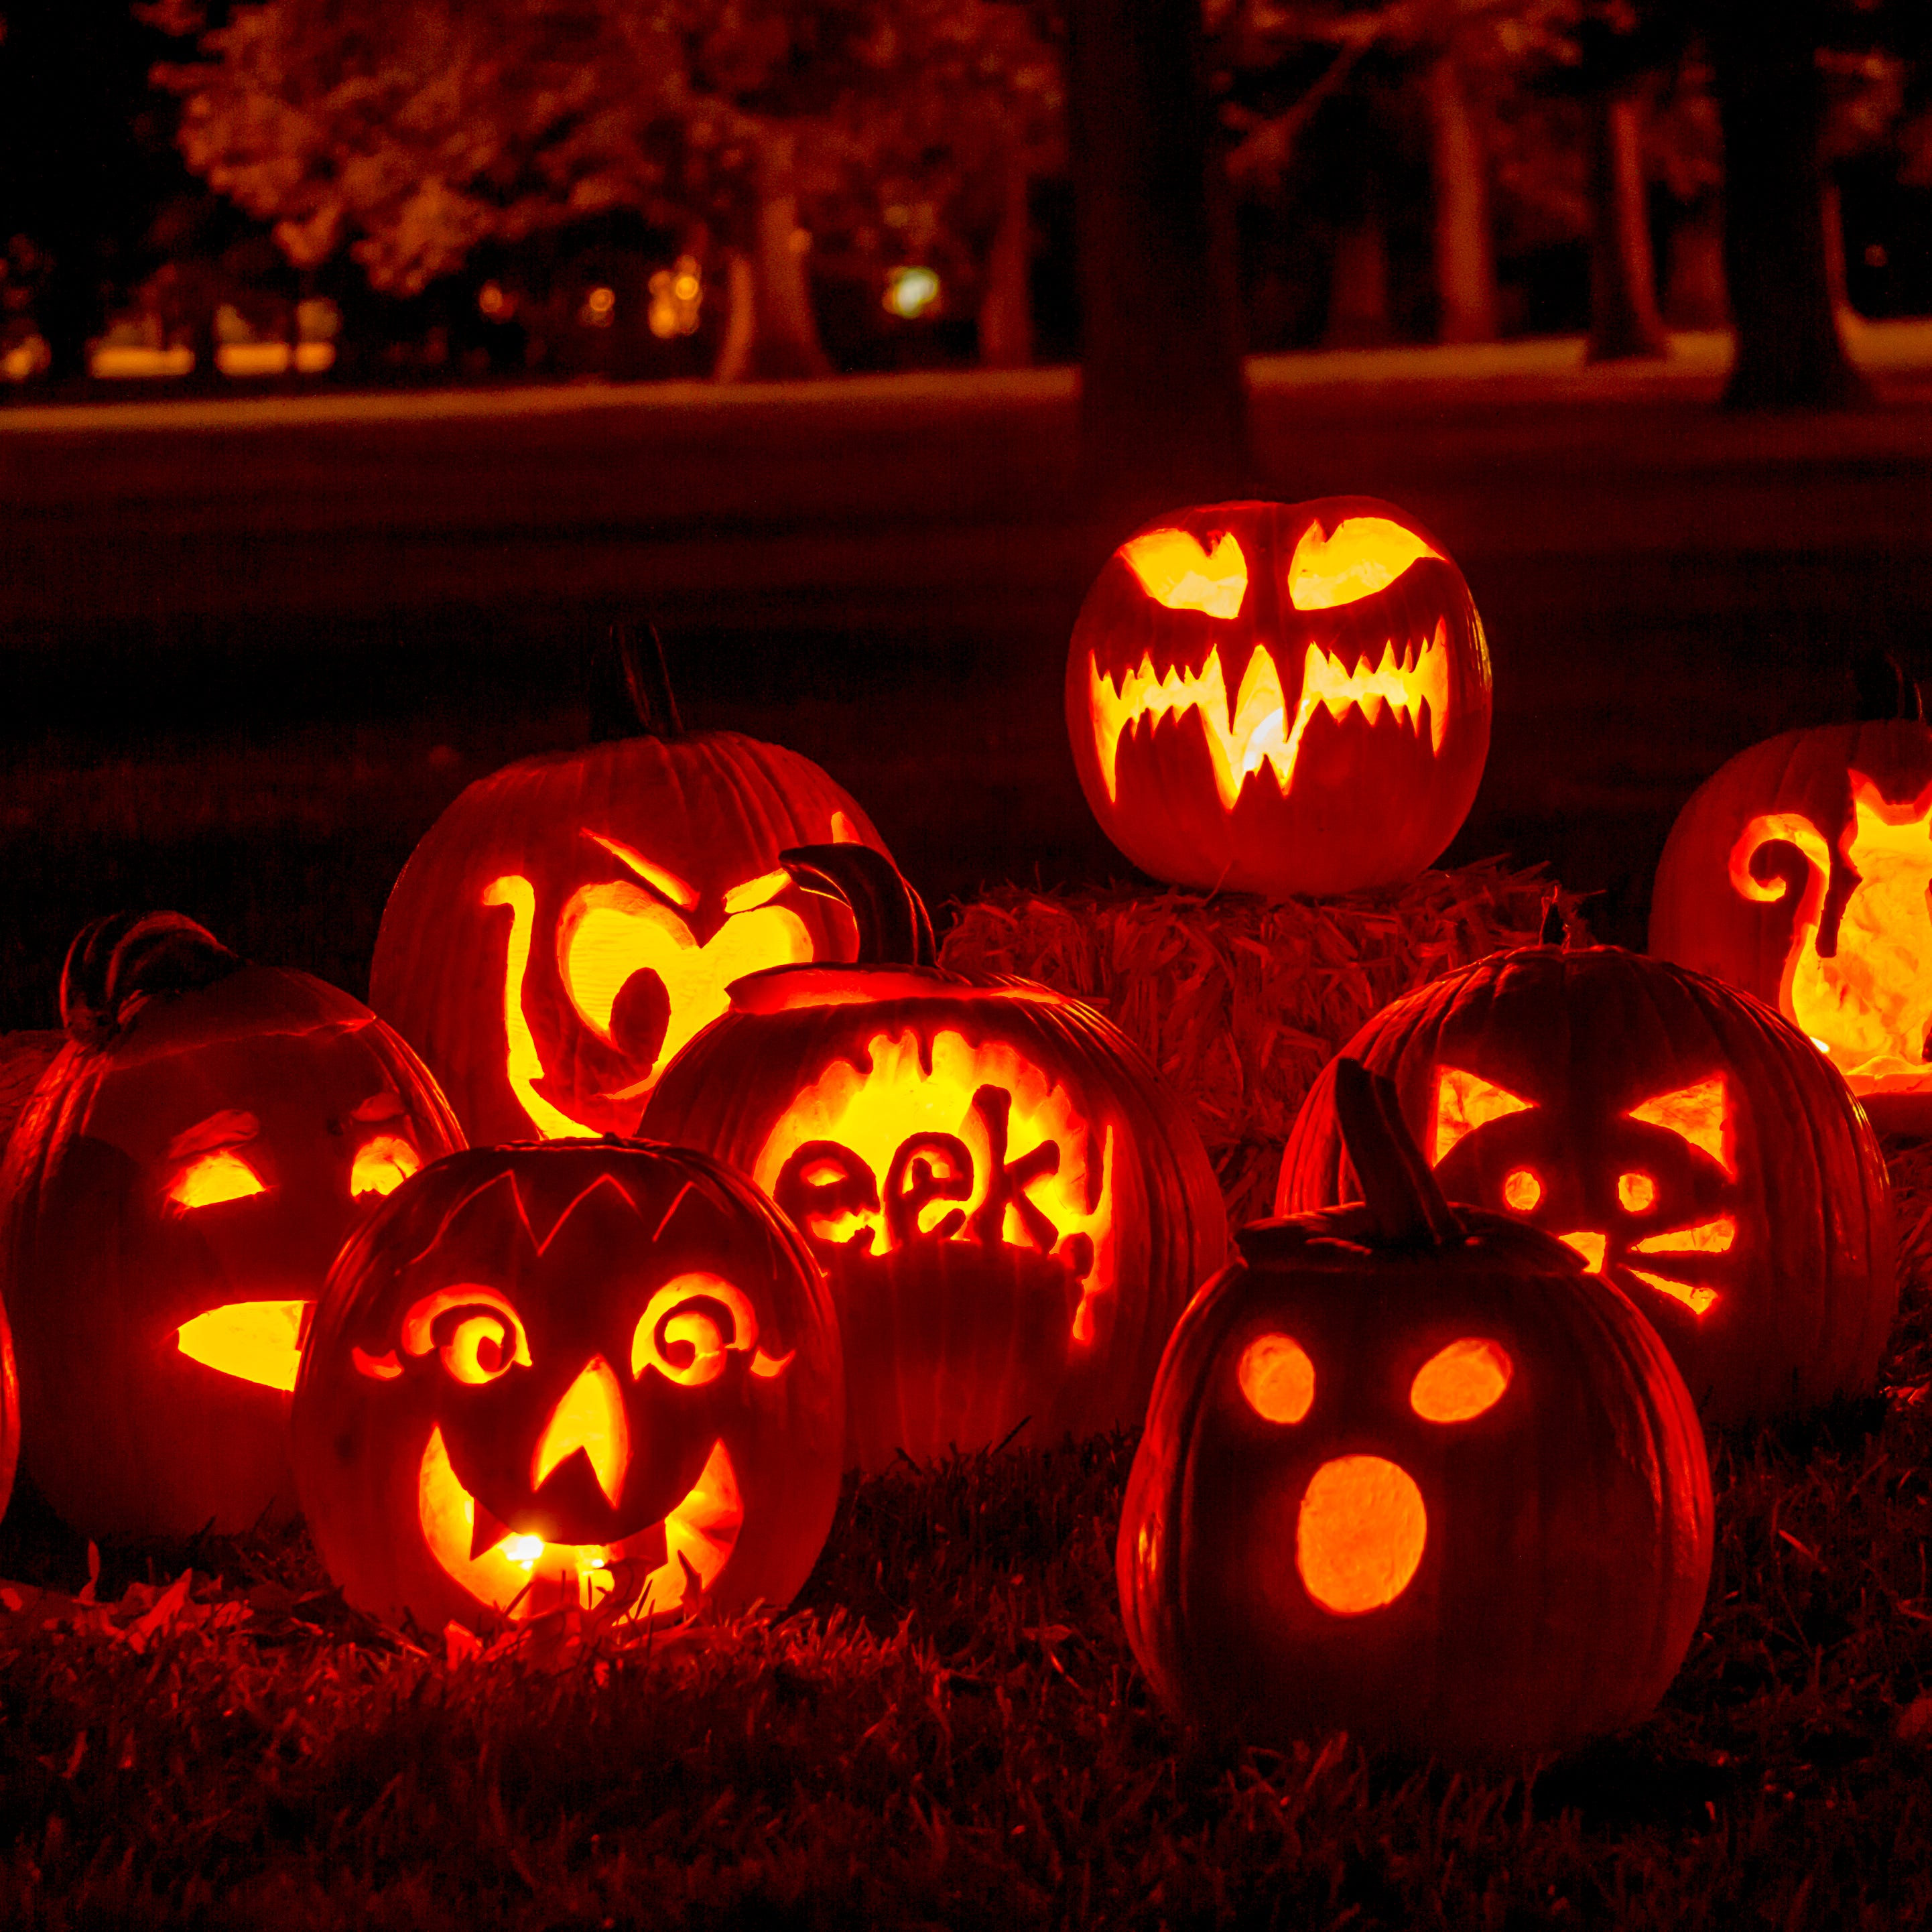 Halloween For Kids Las Cruces 2020 Las Cruces Halloween 2020: Guide to holiday activities